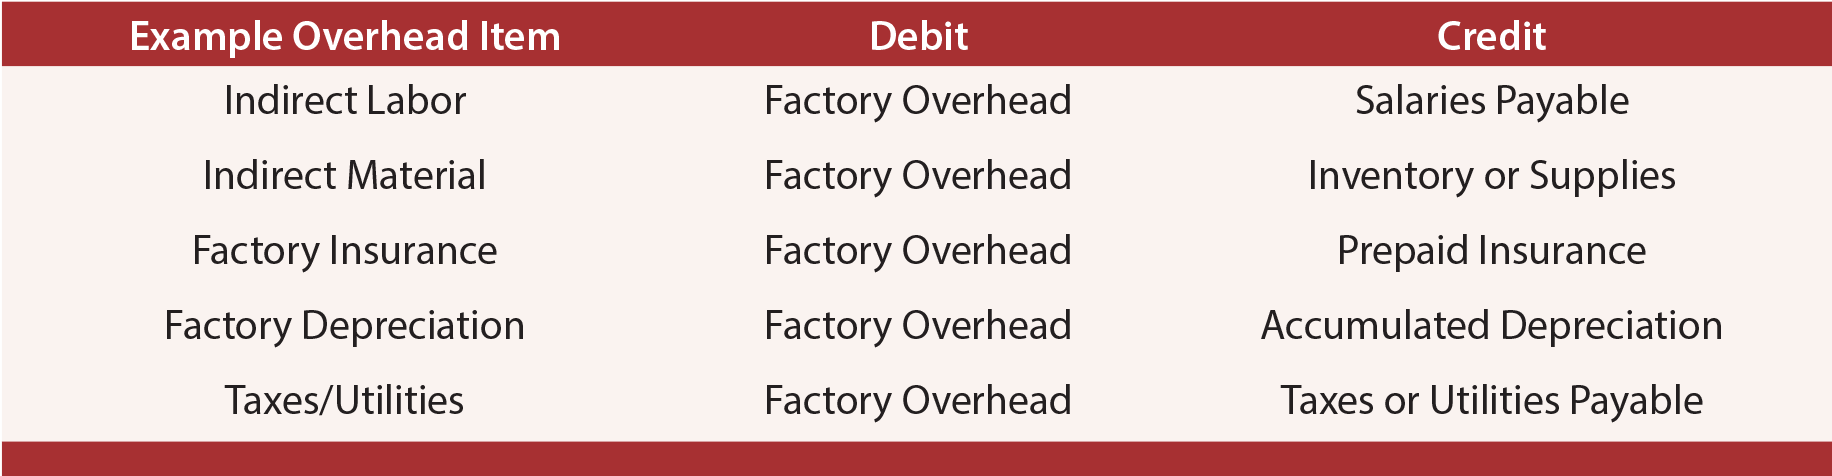 Actual Overhead - Factory Overhead Debits